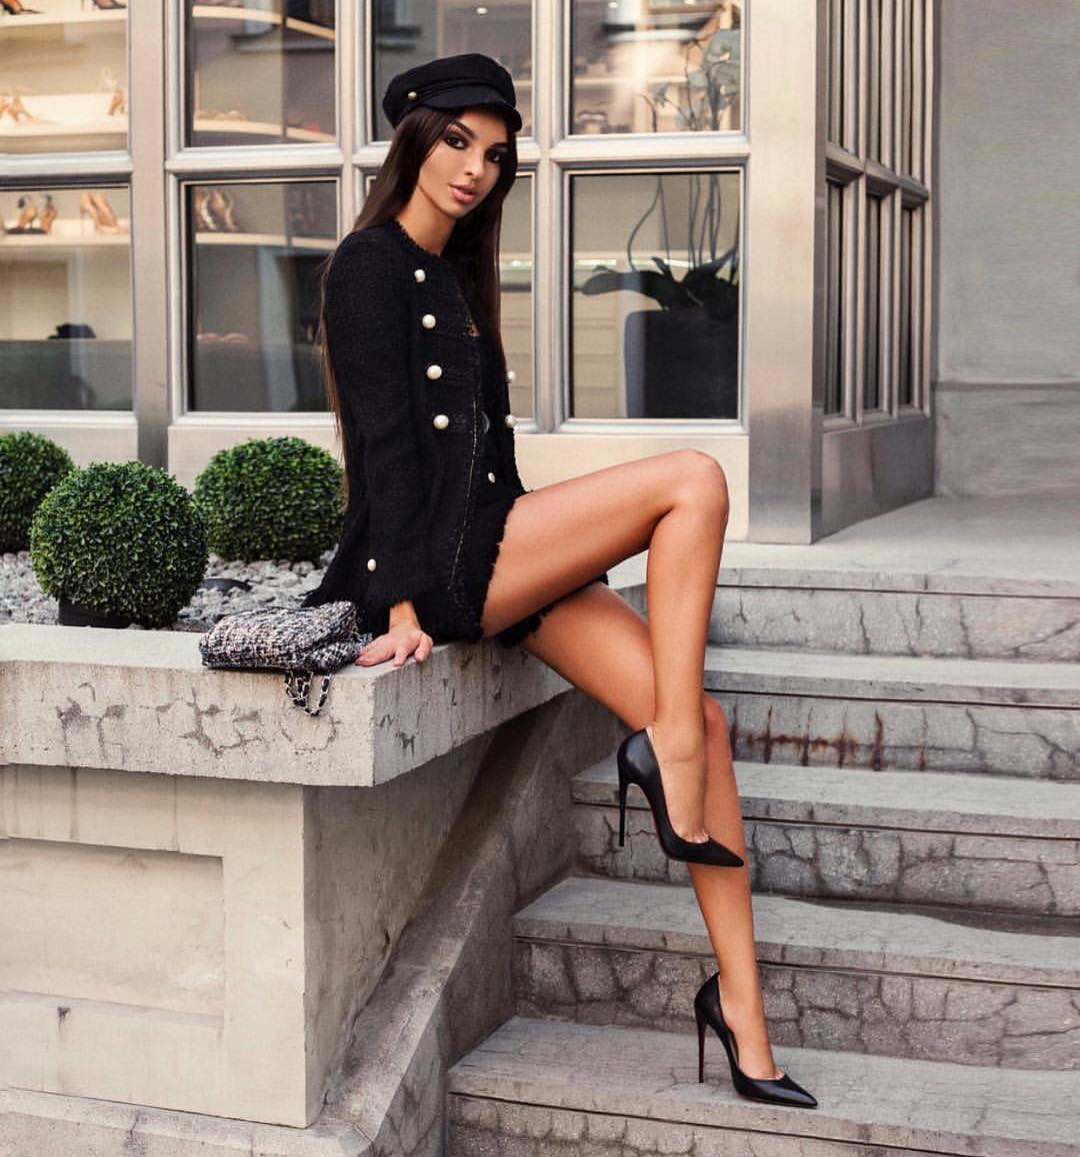 Tweed Blazer And Lace Dress: All Black OOTD For Fall 2020